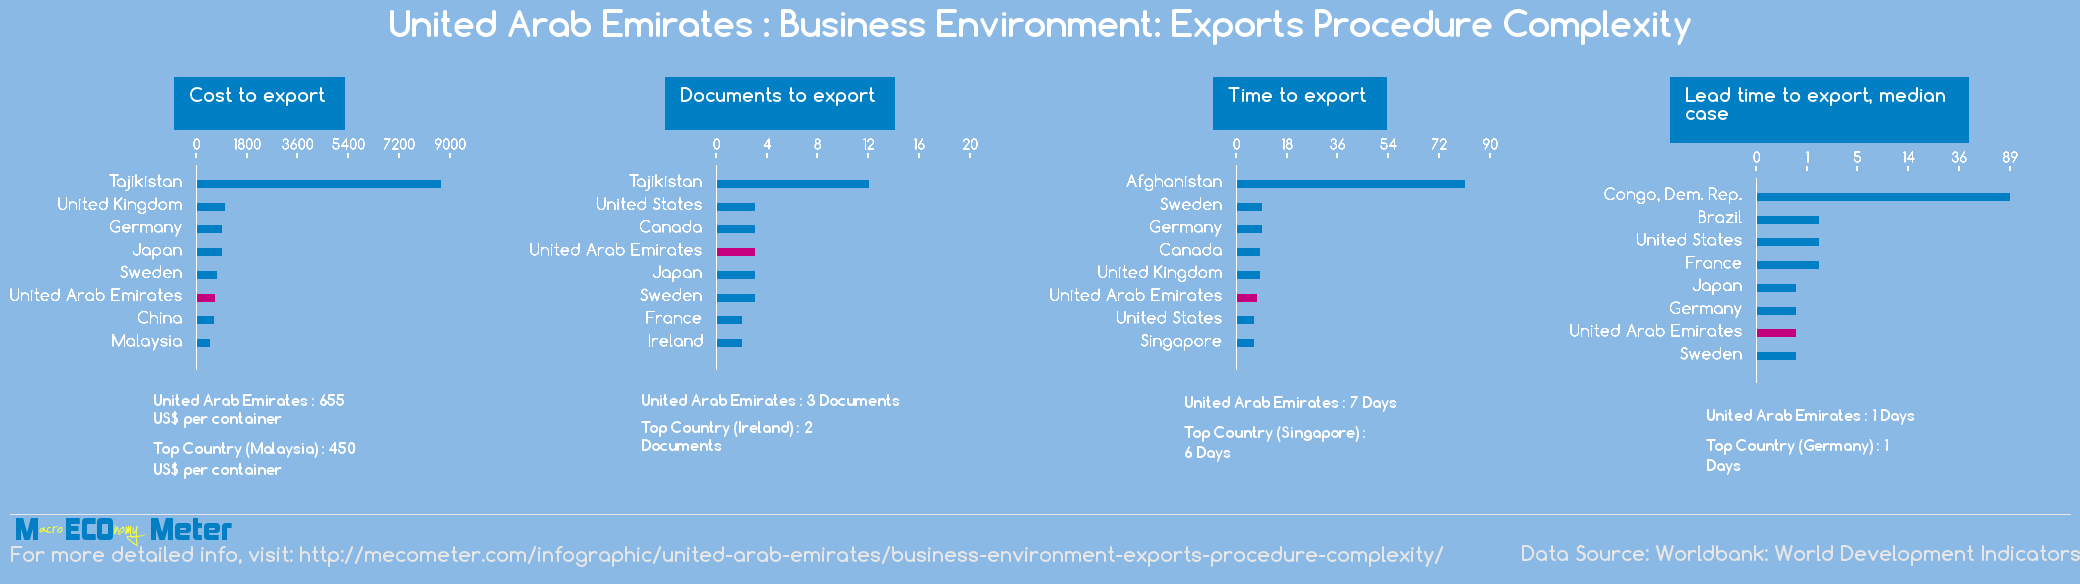 United Arab Emirates : Business Environment: Exports Procedure Complexity